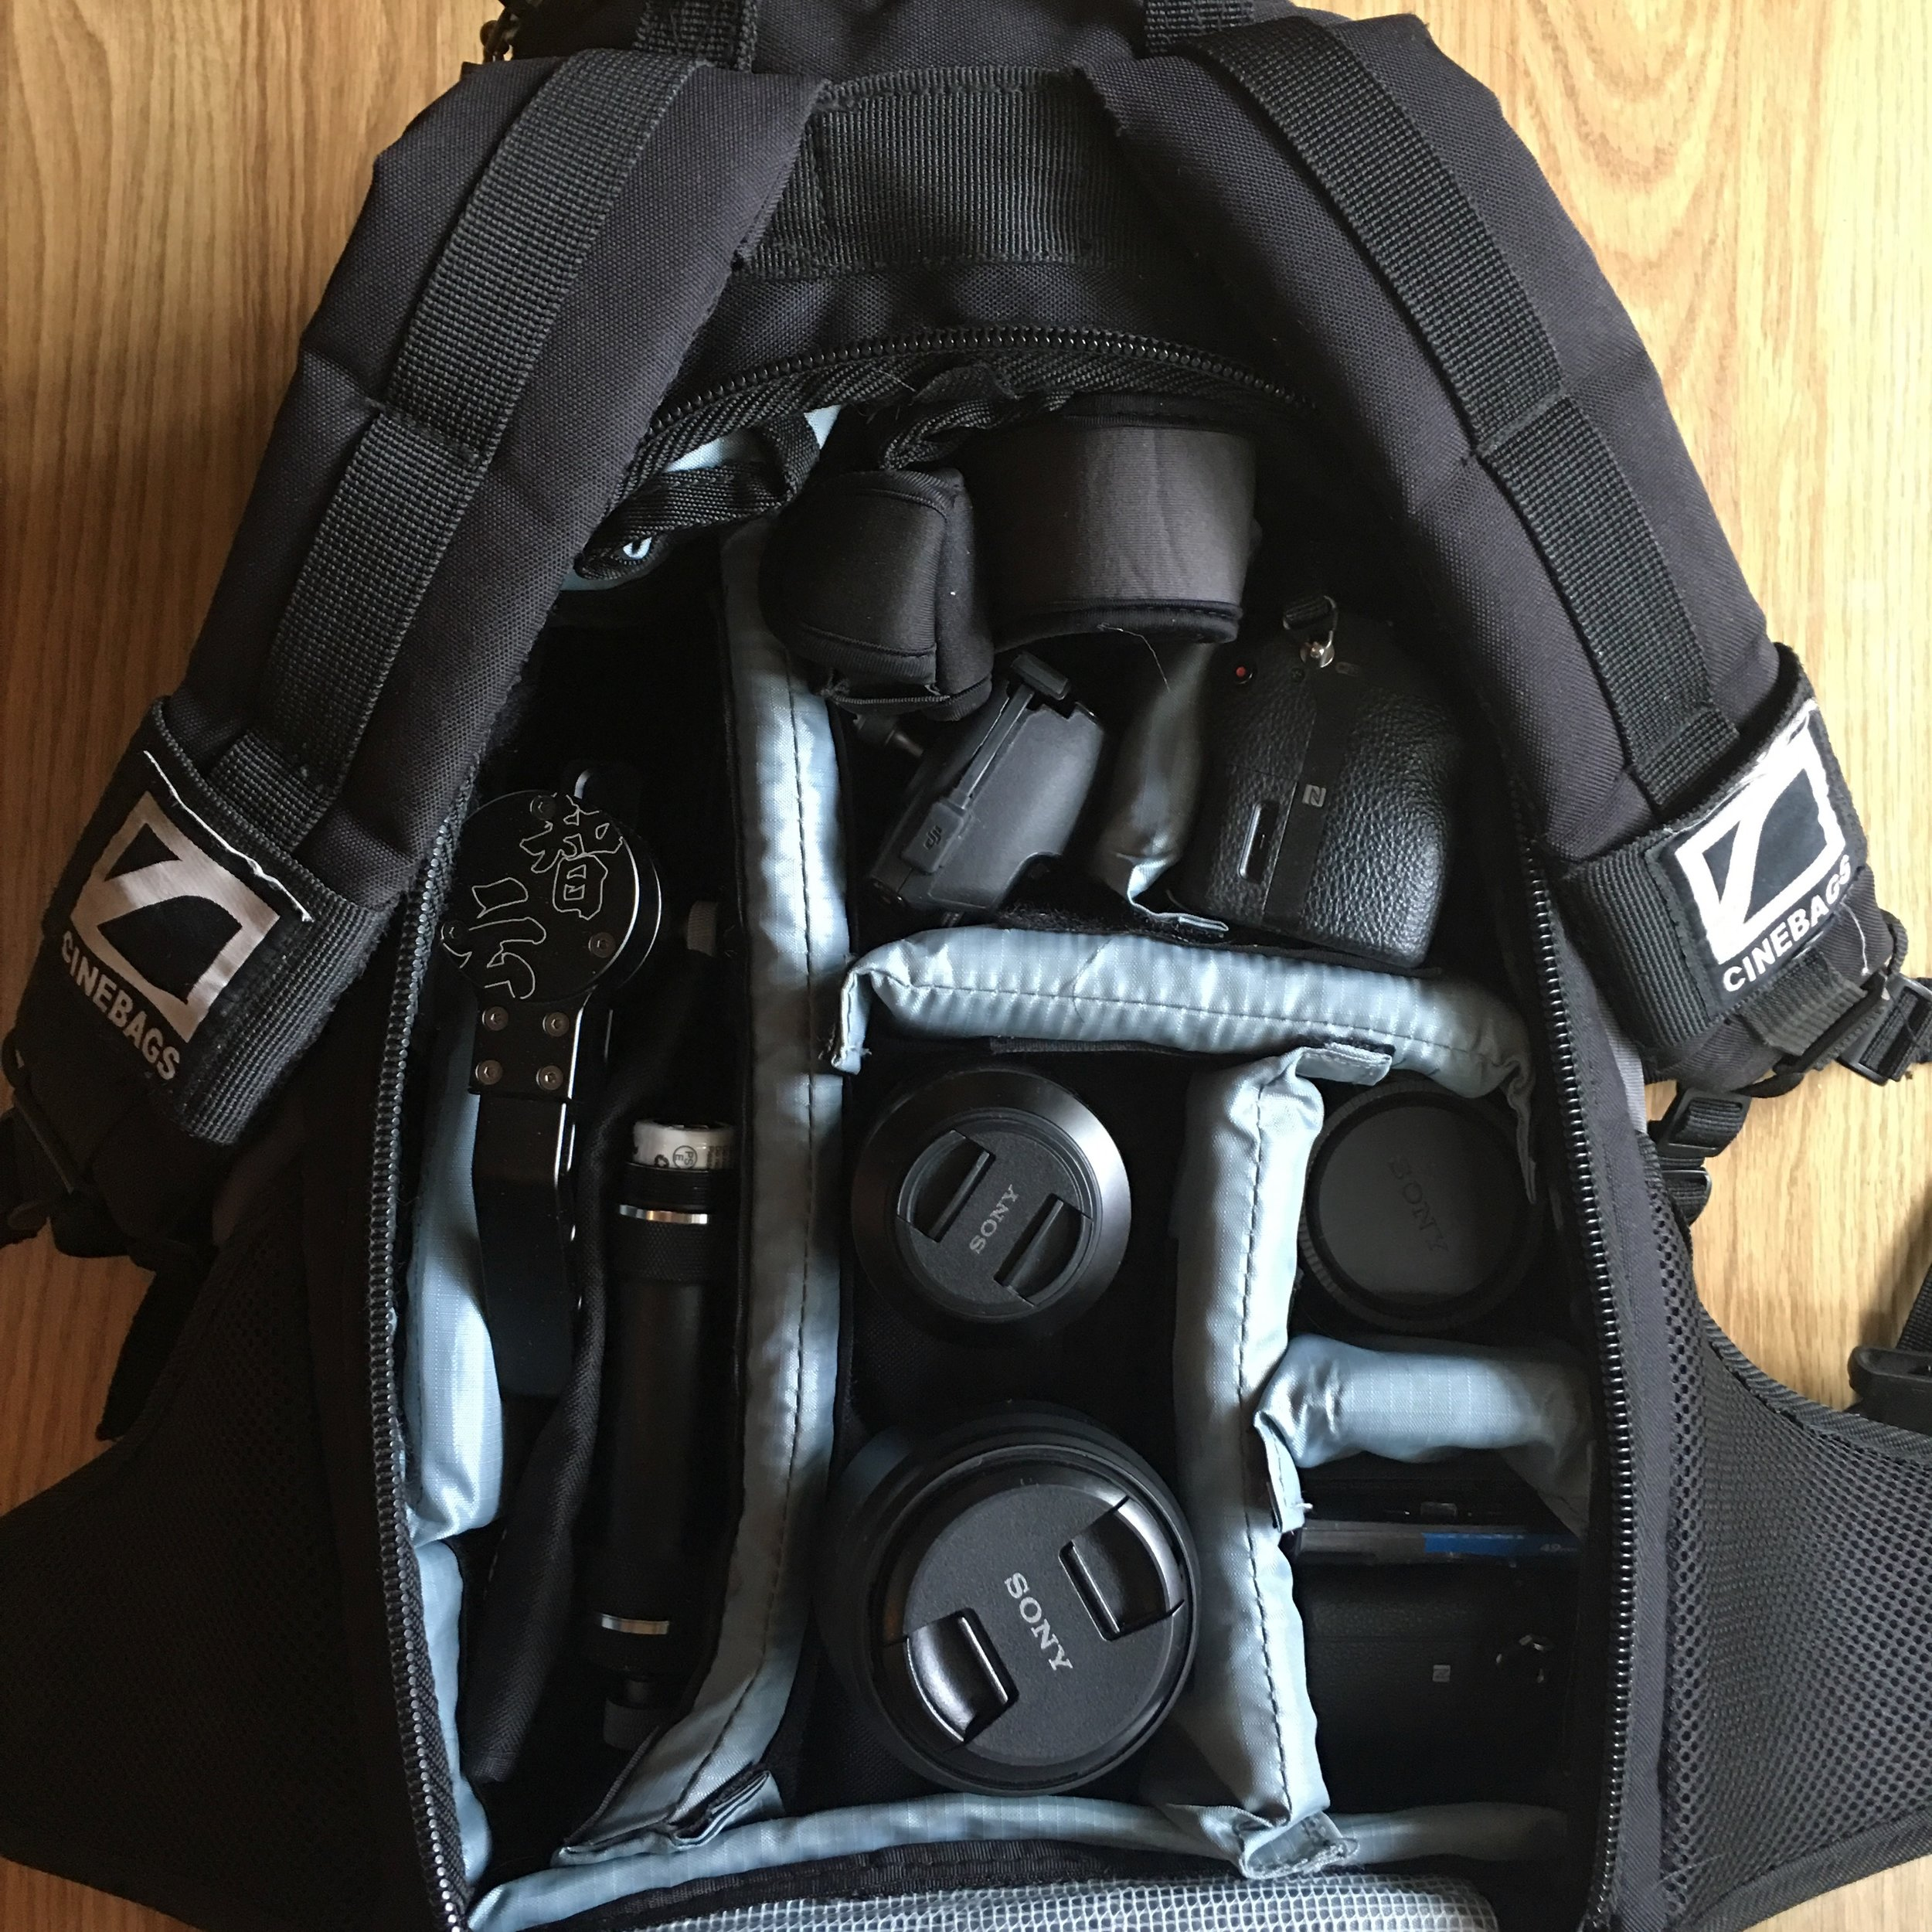 """The CineBags CB25B fits a lot of gear. Featured here: 2 Sony Alpha cameras, 3 lenses, Zhiyun Crane v2 gimbal, and DJI Mavic Pro drone, plus room for batteries, accessories and 15"""" MacBook Pro."""